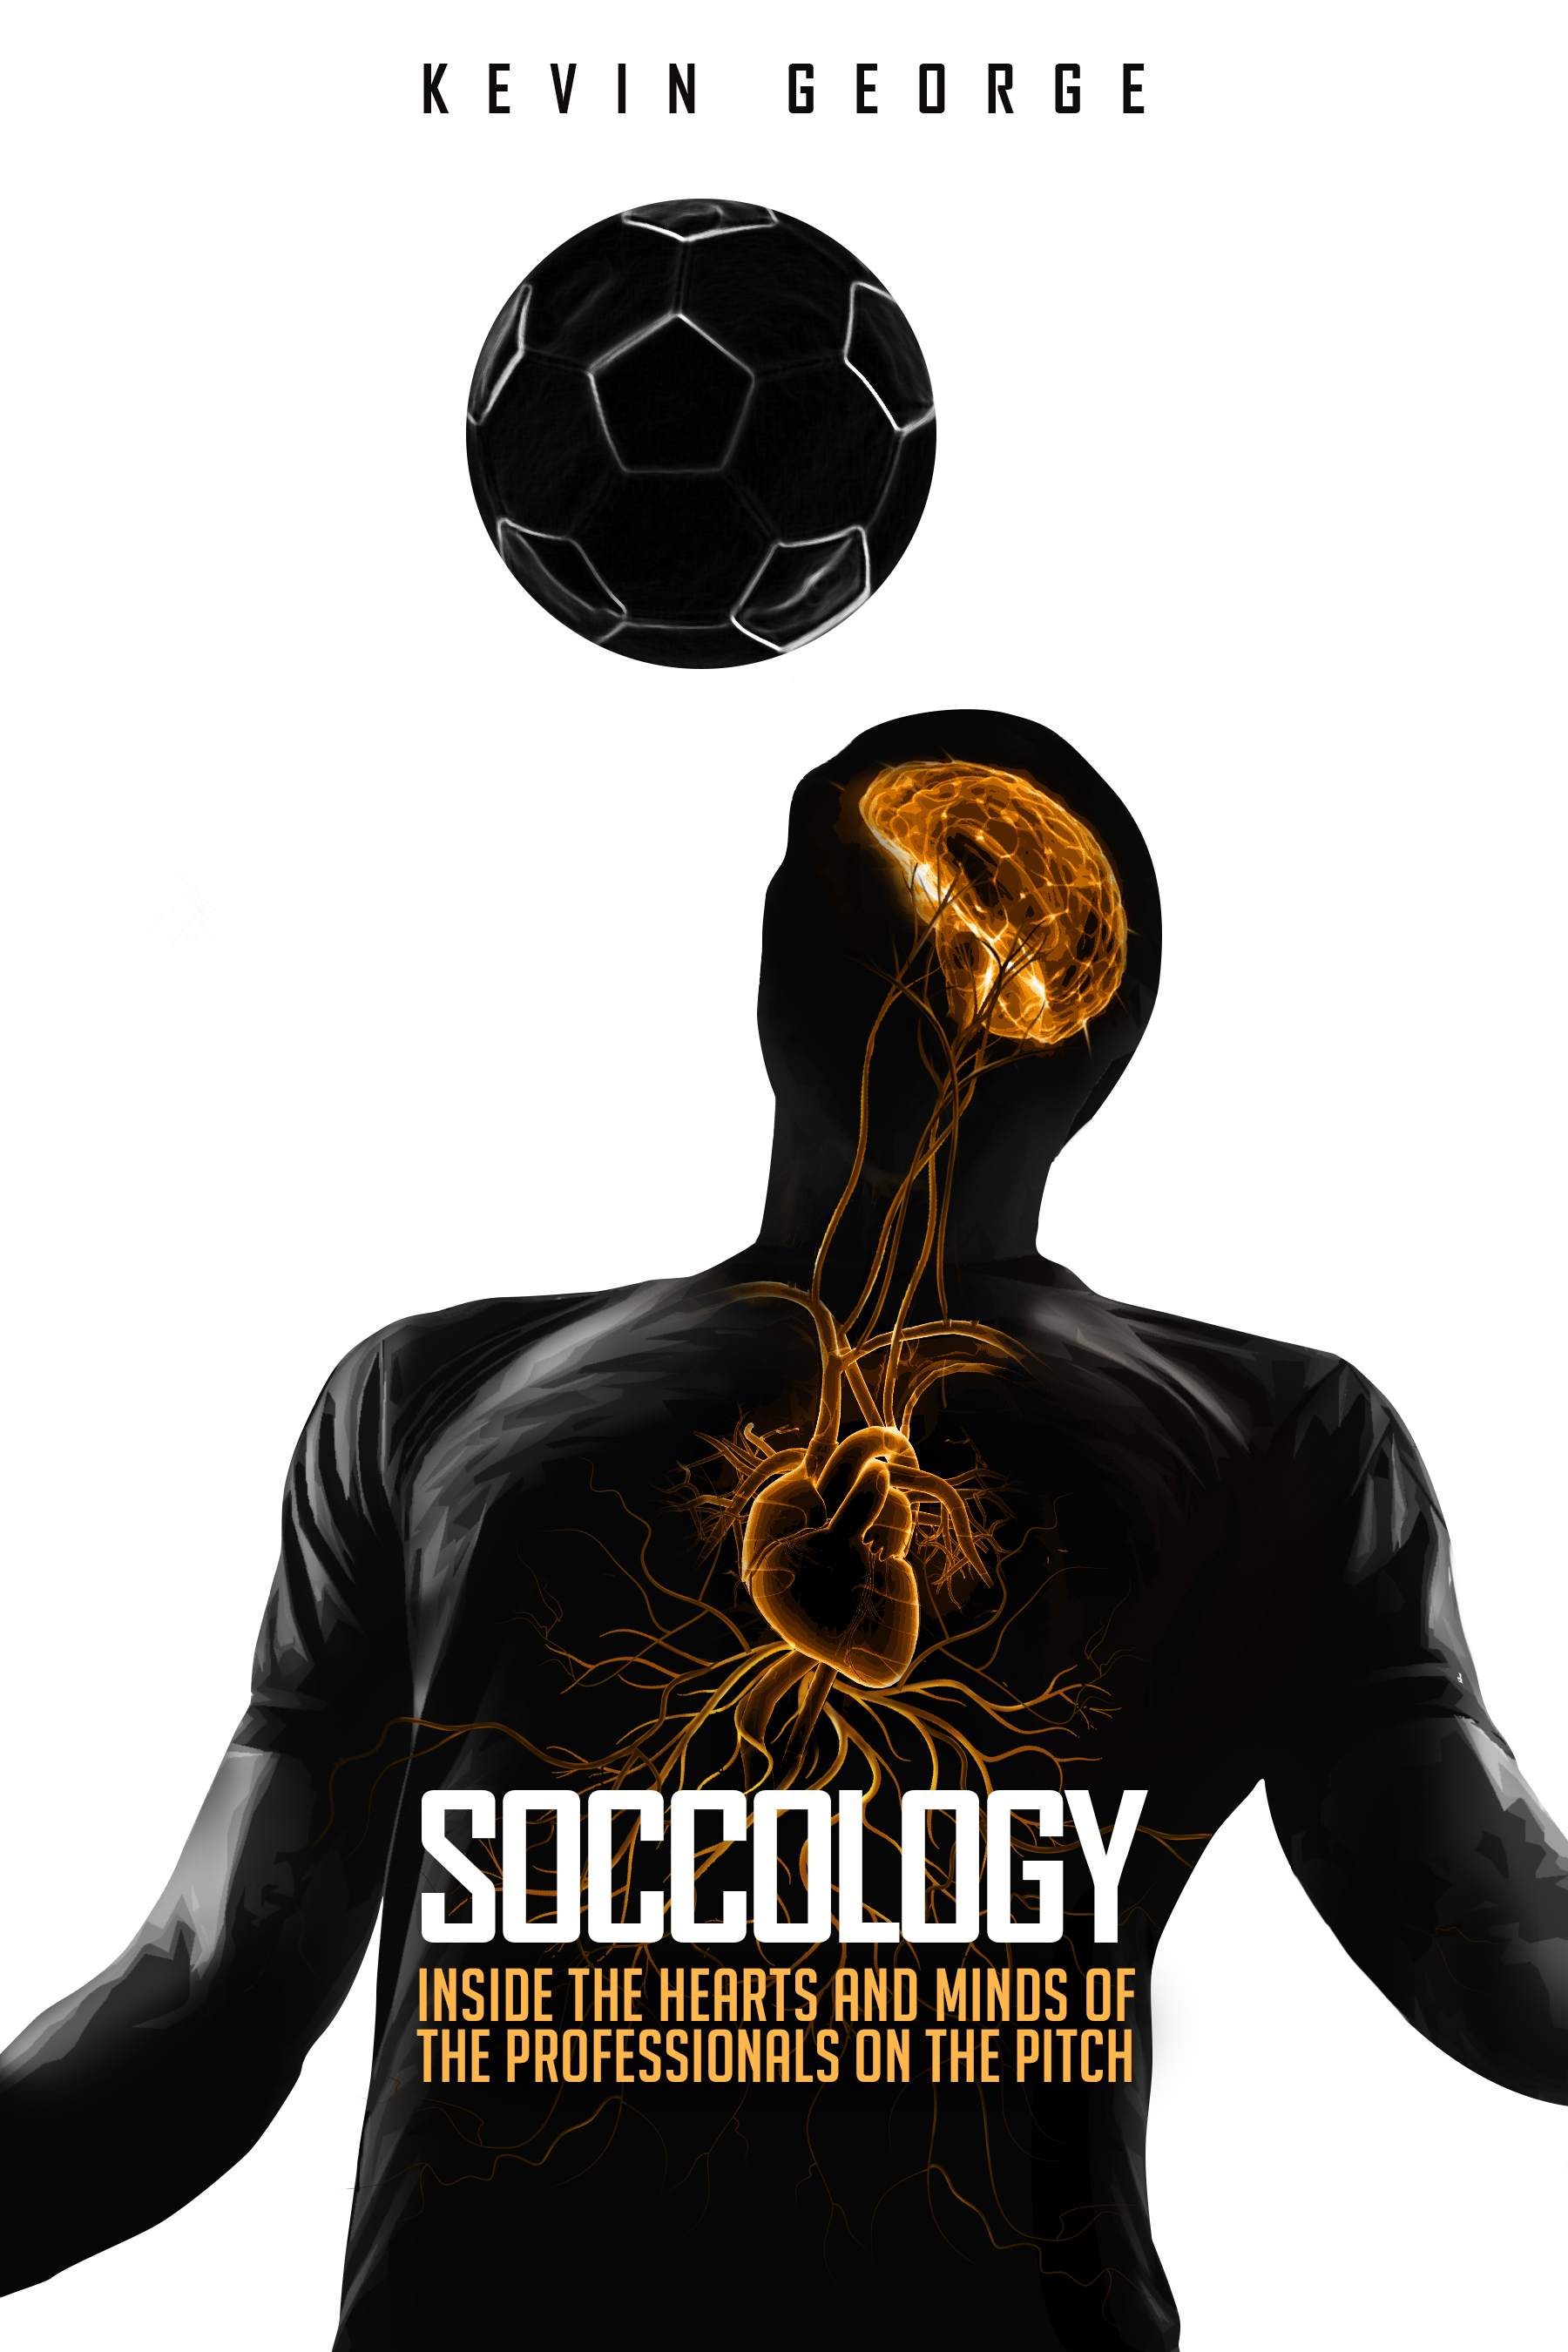 Soccology by Kevin George